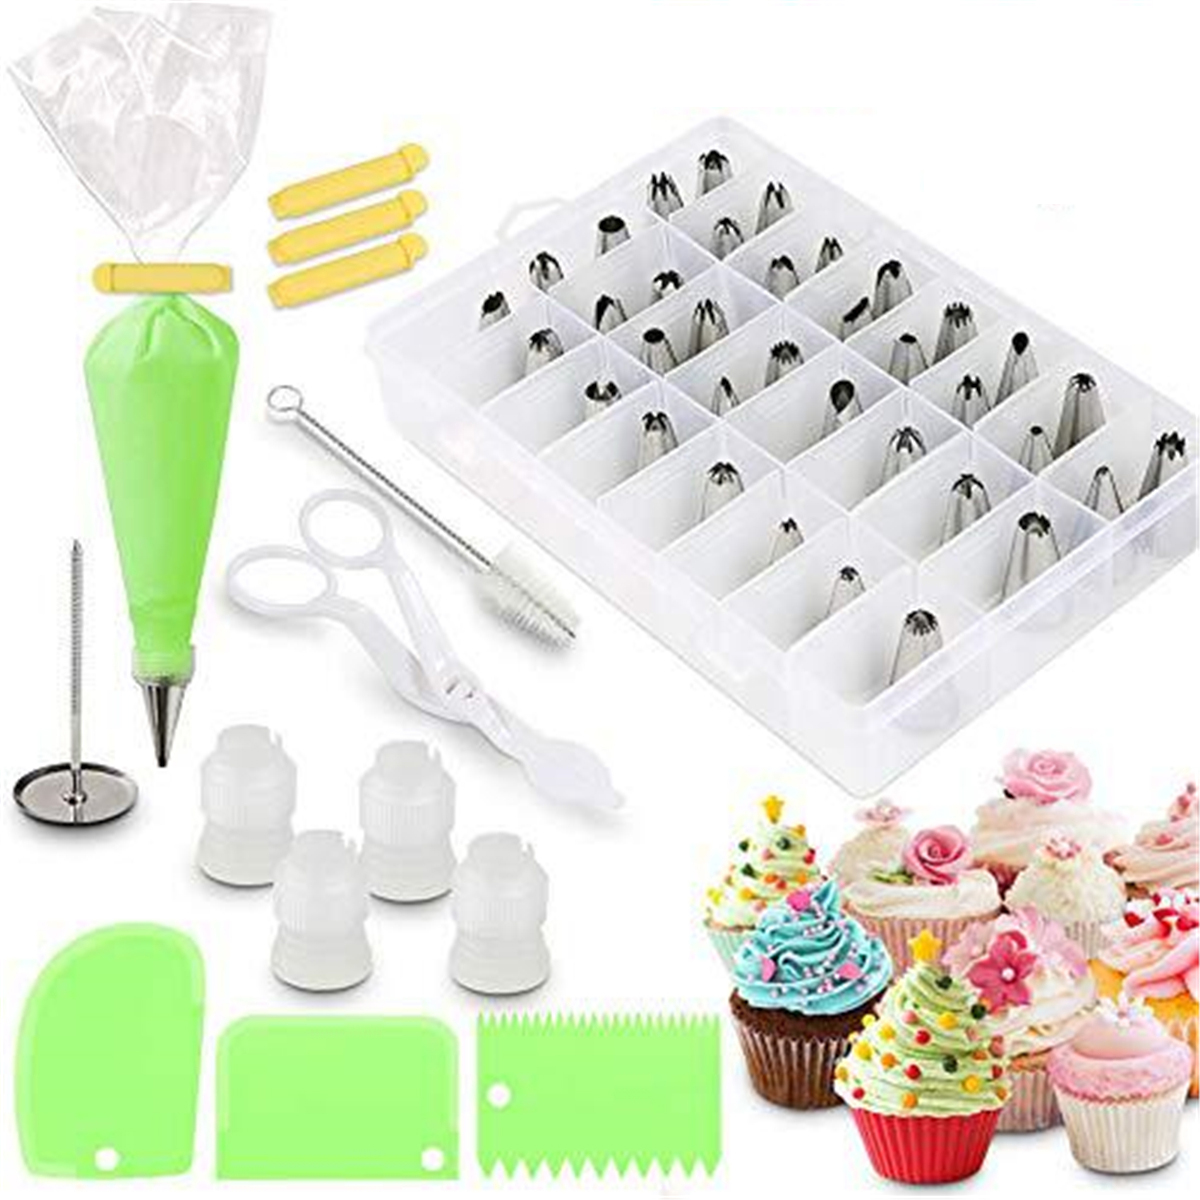 62pcs Cream DIY Icing Piping Tips Pastry Bags+Nozzle Decorating Baking Tool Mold